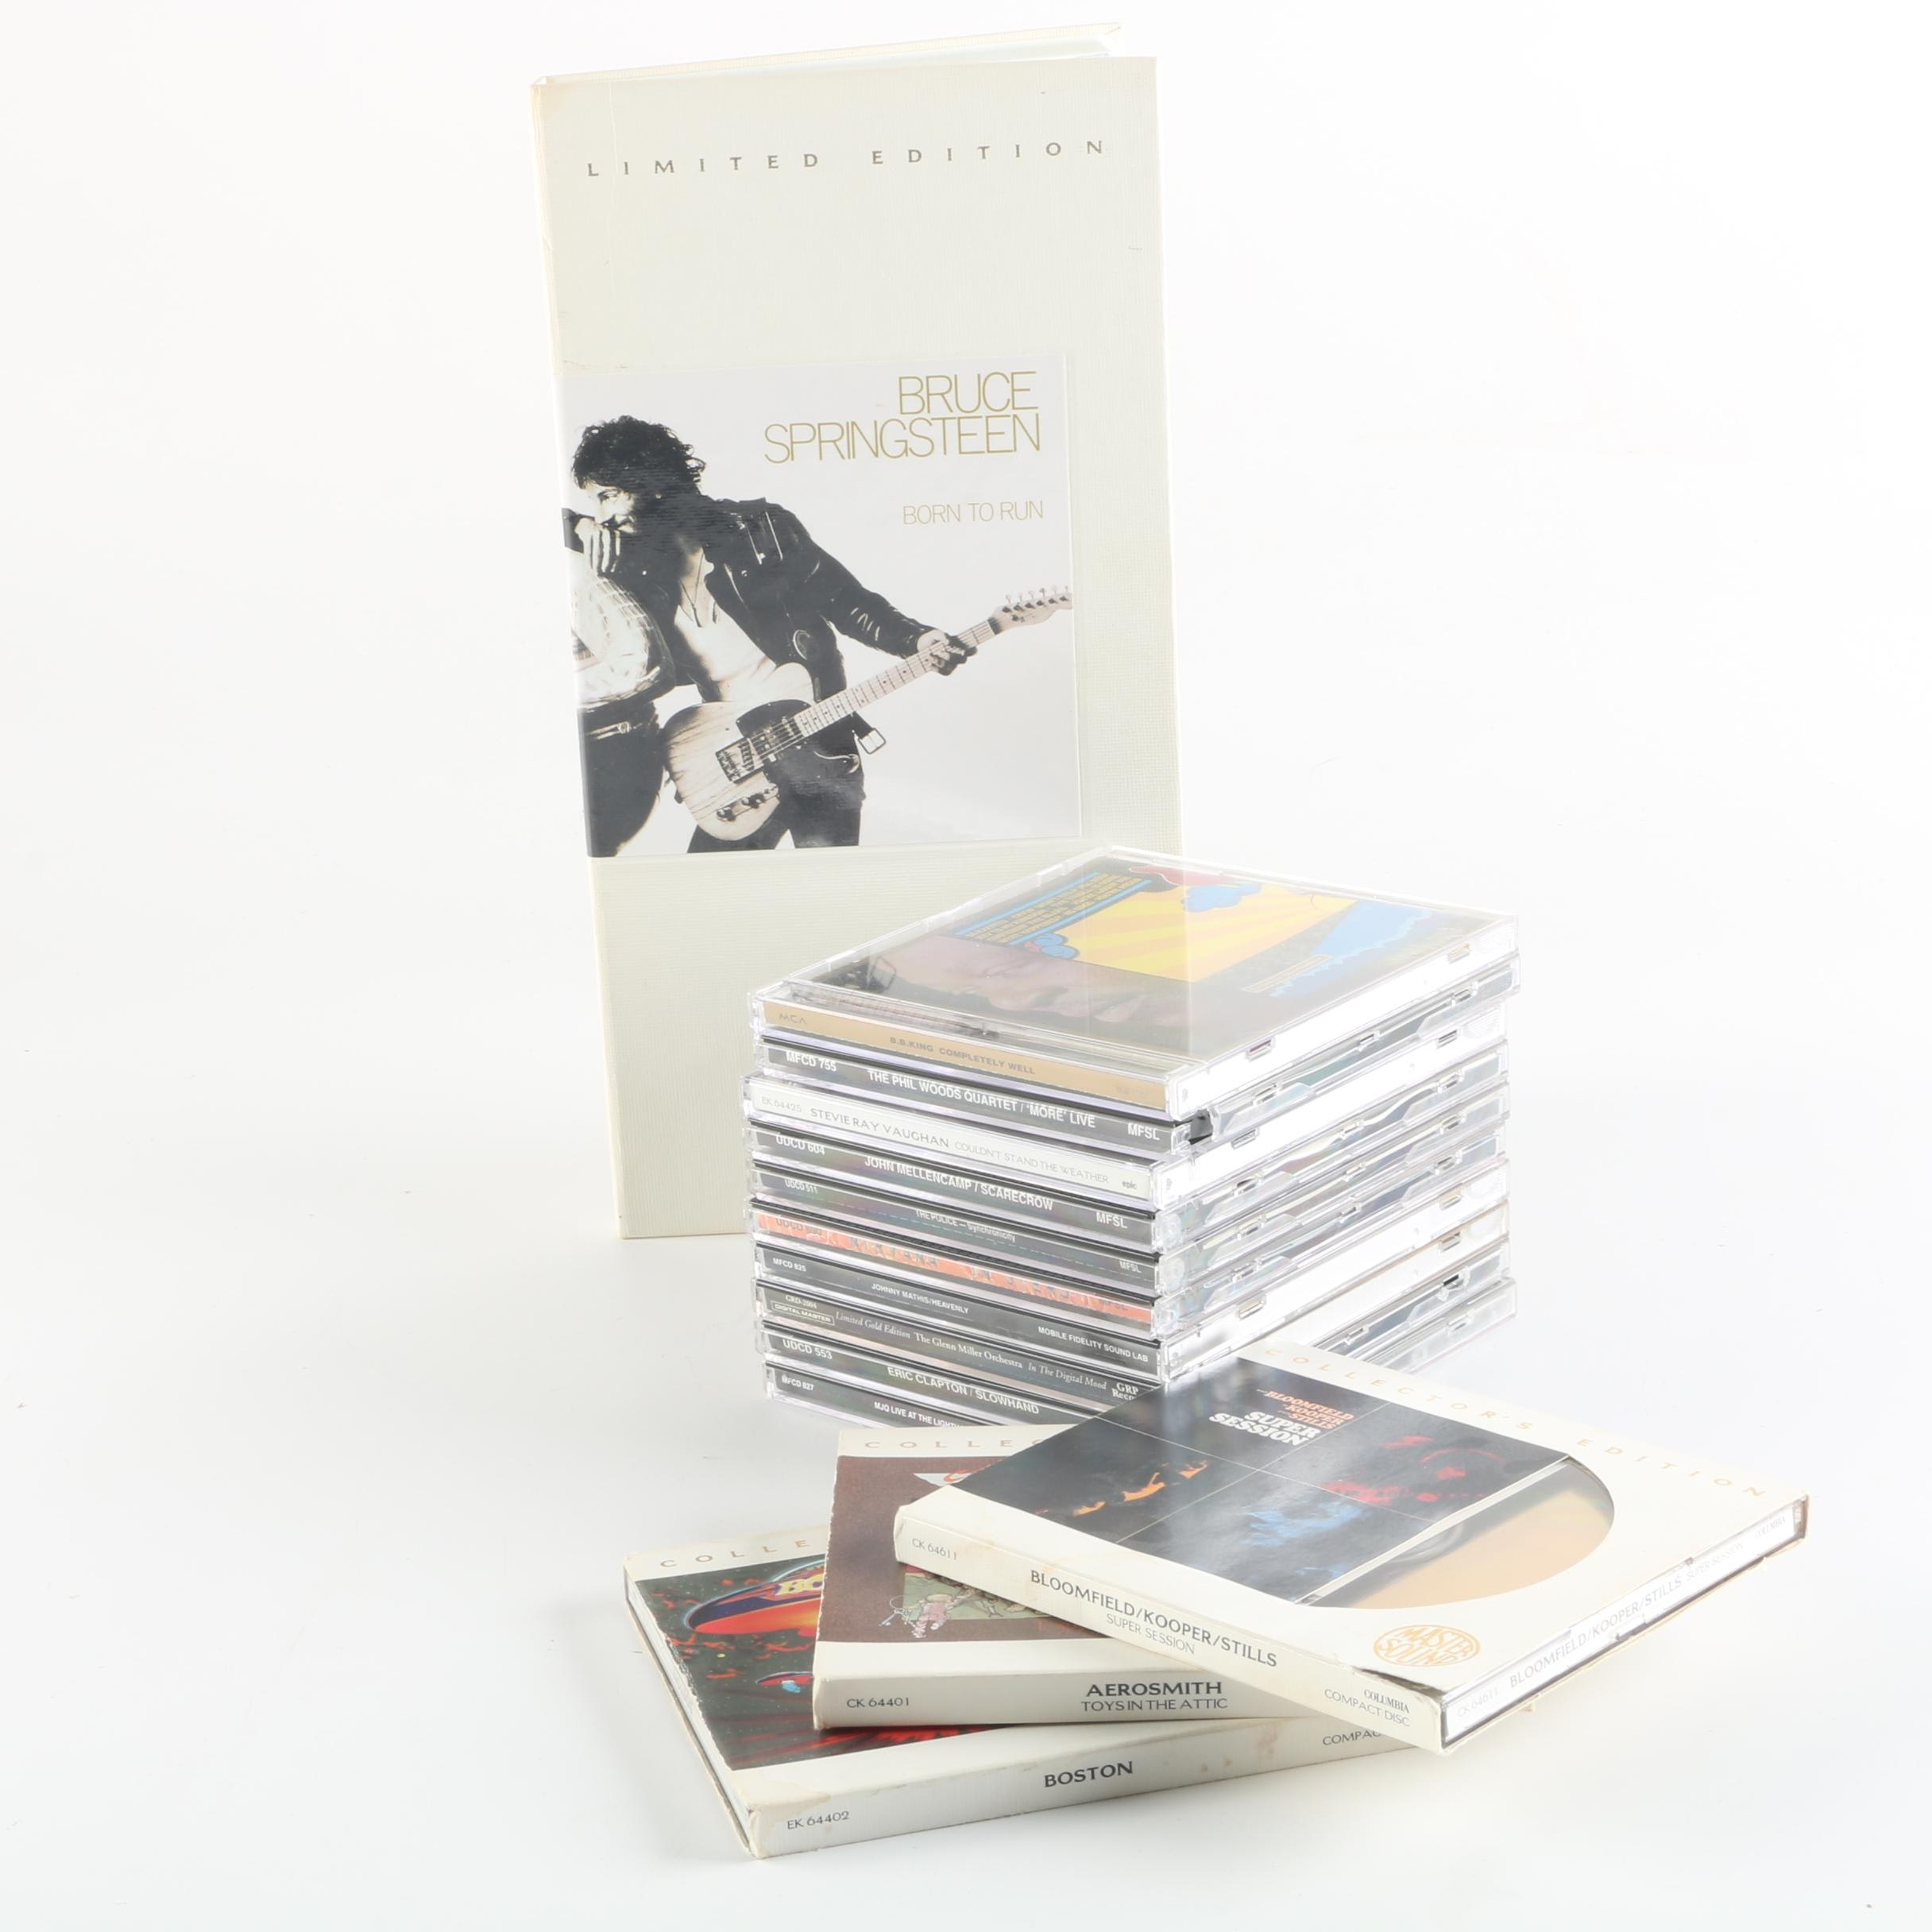 Aerosmith, Boston and Springsteen Master Sound Collector's Edition CDs and More